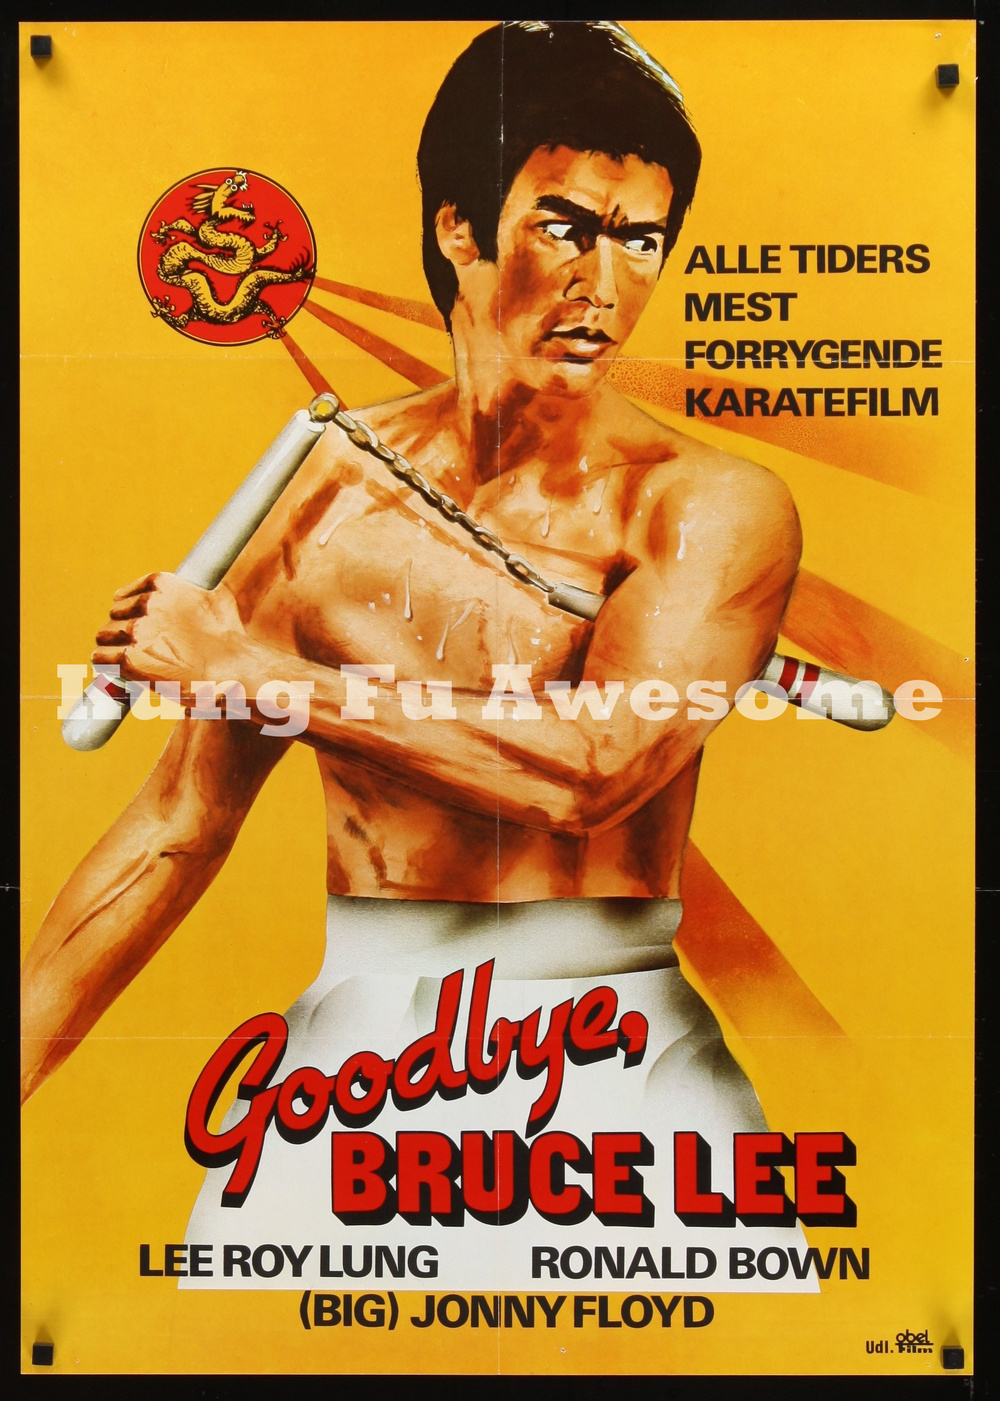 danish_goodbye_bruce_lee_HP00962_L.jpg